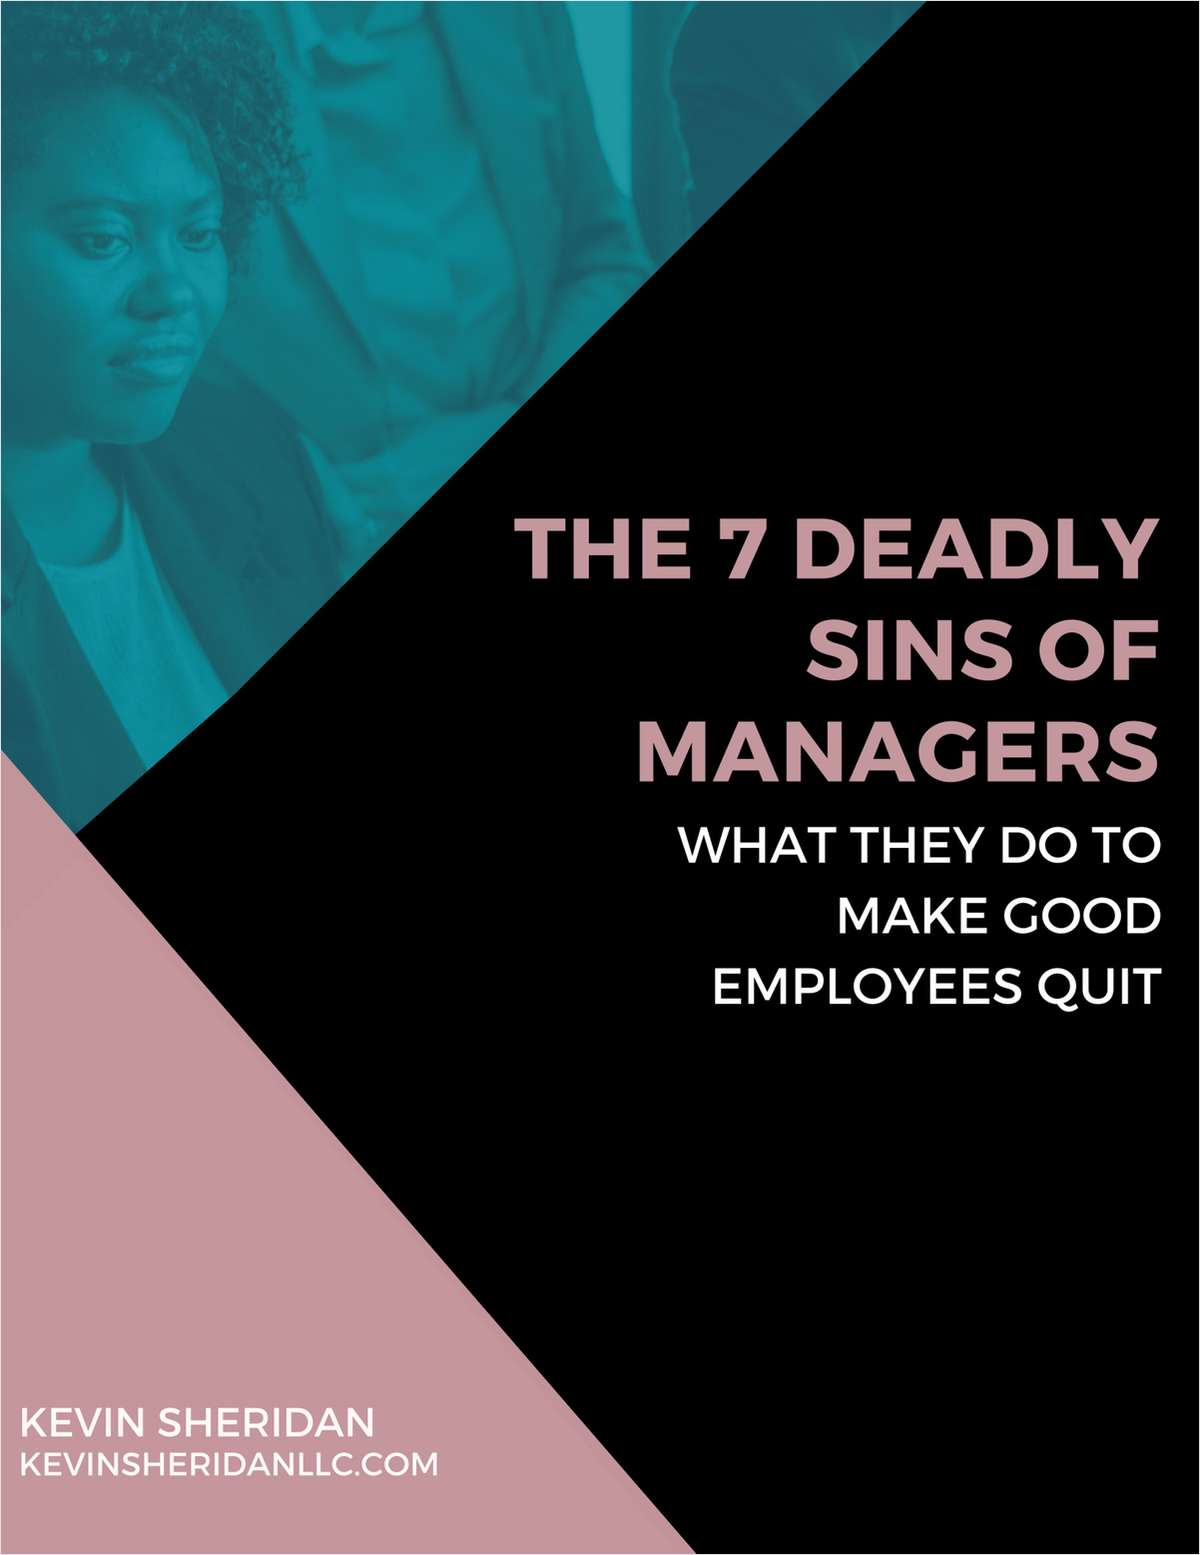 The 7 Deadly Sins of Managers - What They Do to Make Good Employees Quit